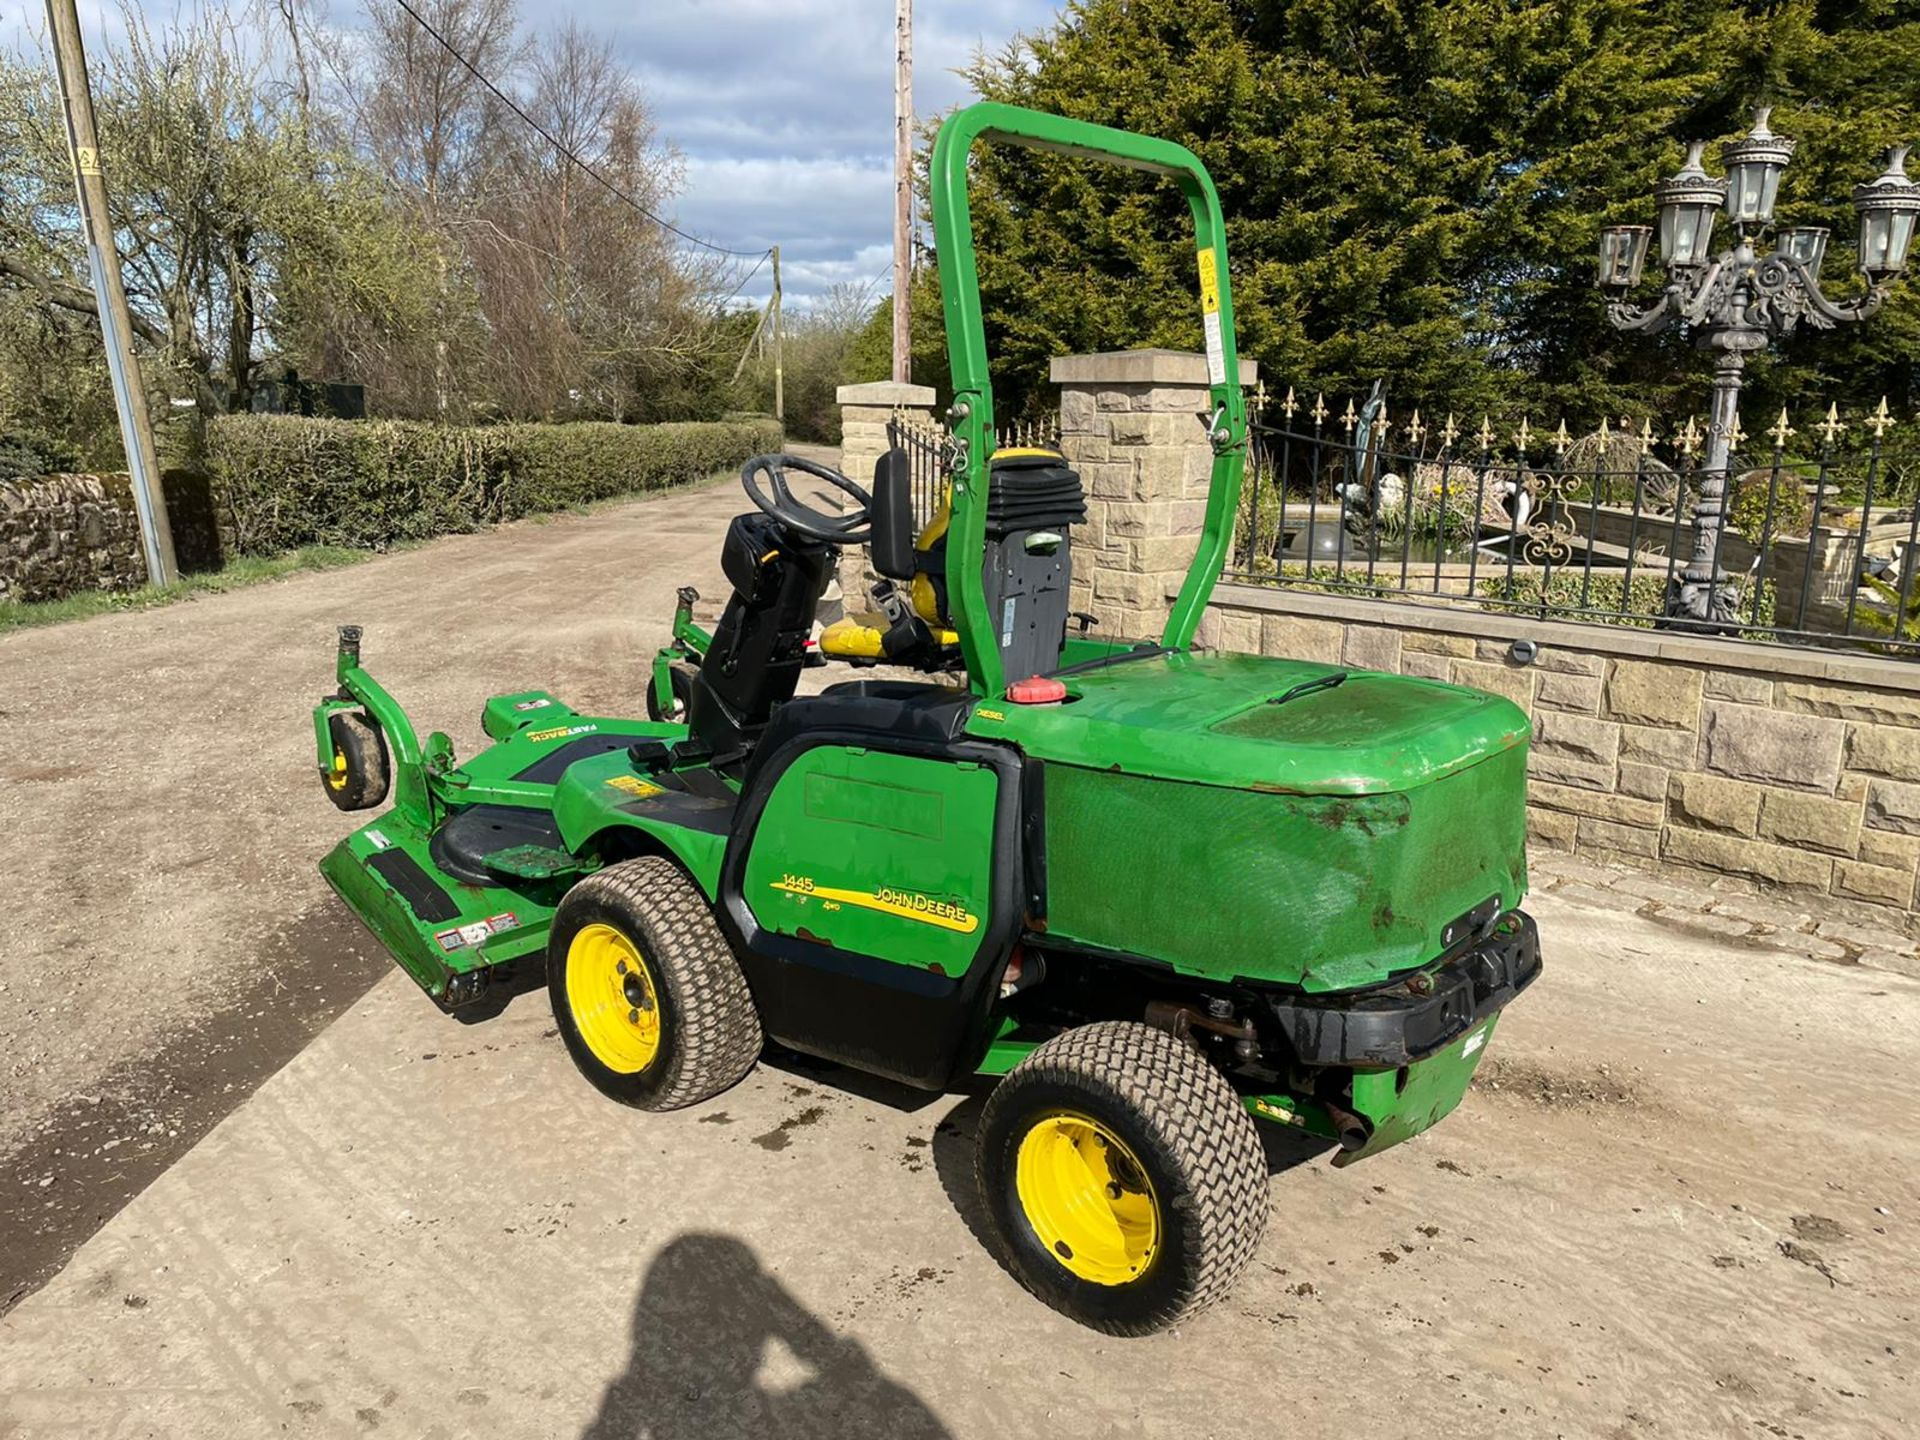 JOHN DEERE 1445 RIDE ON MOWER, RUNS DRIVES AND CUTS, IN USED BUT GOOD CONDITION *NO VAT* - Image 3 of 9